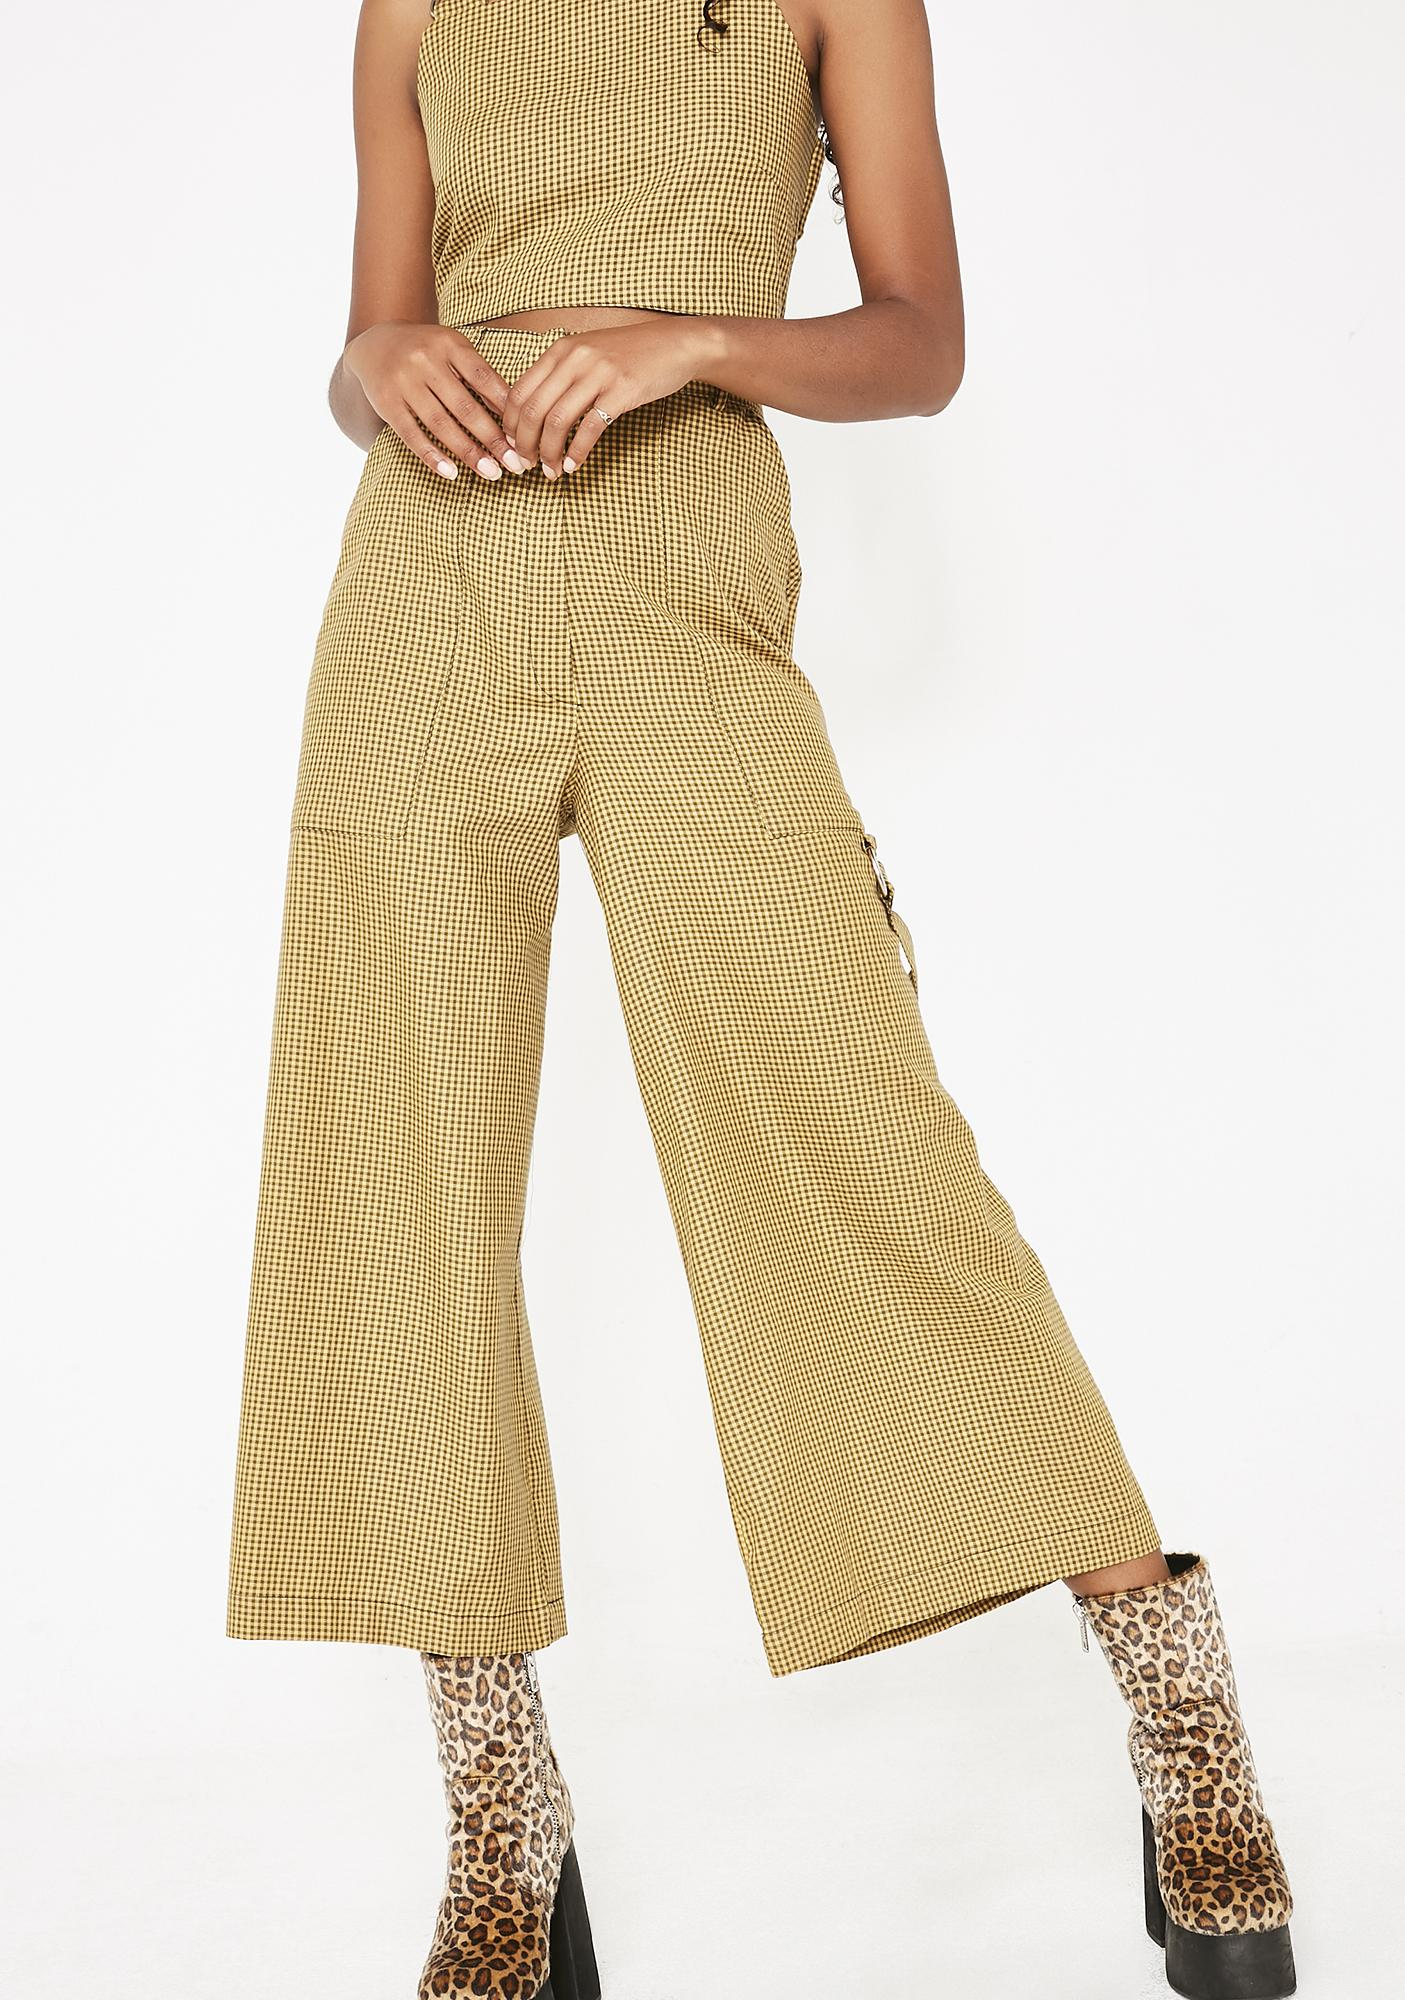 The Ragged Priest Hitch Pants